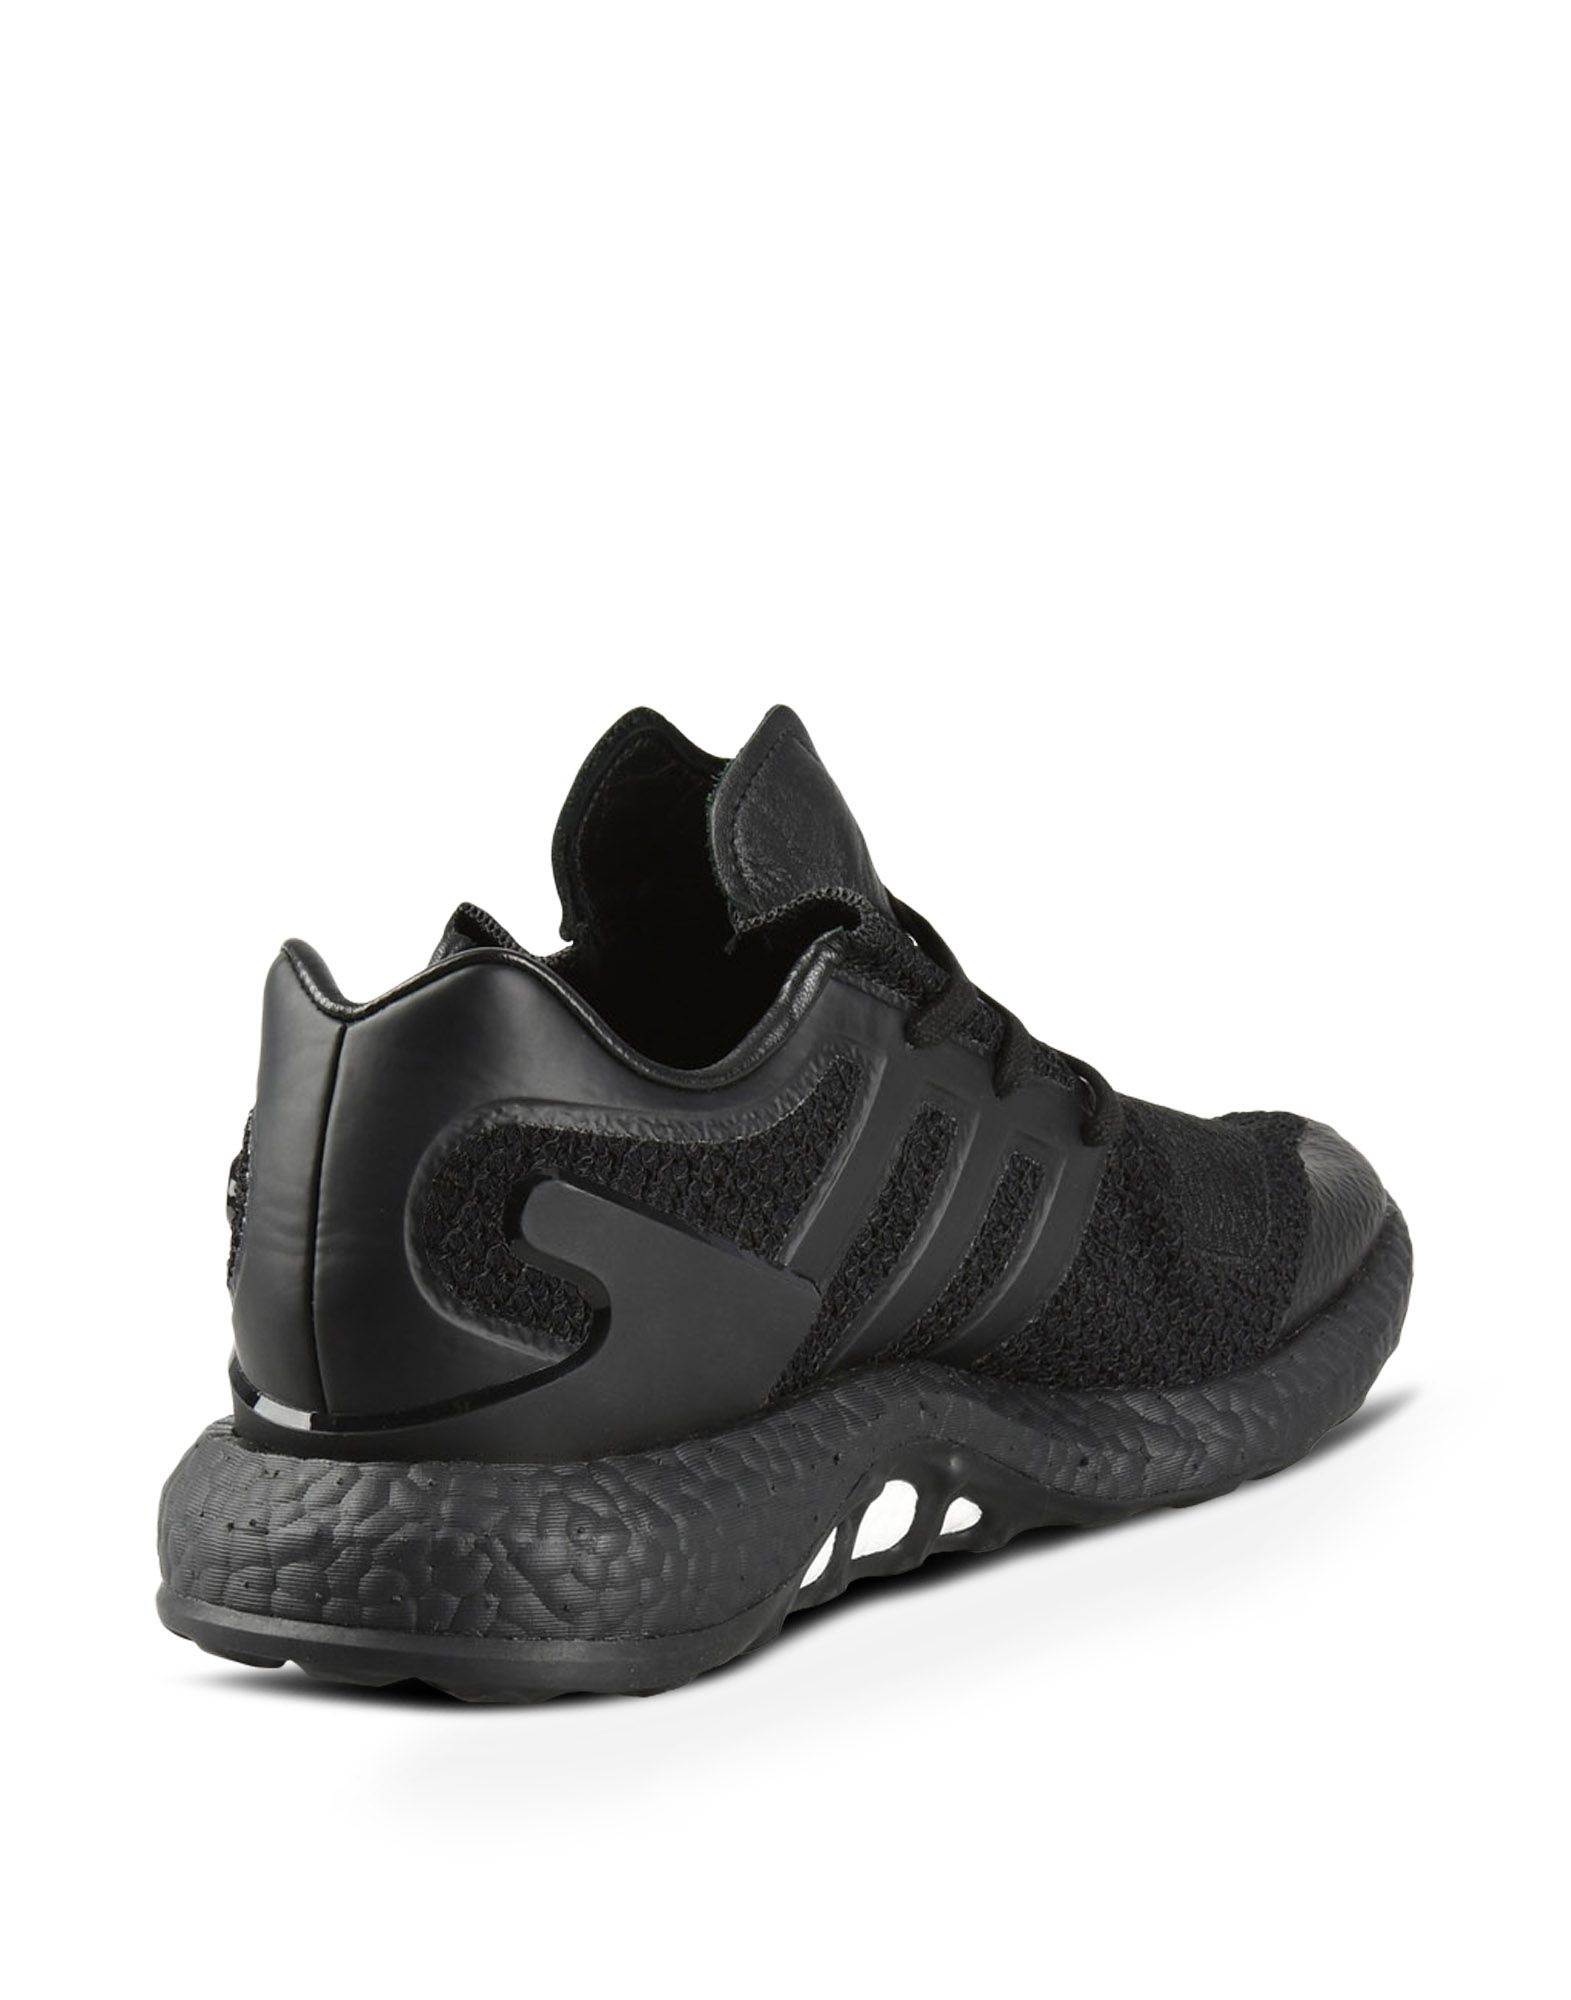 7e32eba34512 The Y-3 Pureboost is constructed with premium quality and lightweight  finish in mind and the Triple Black colourway builds on the success of  recent ...